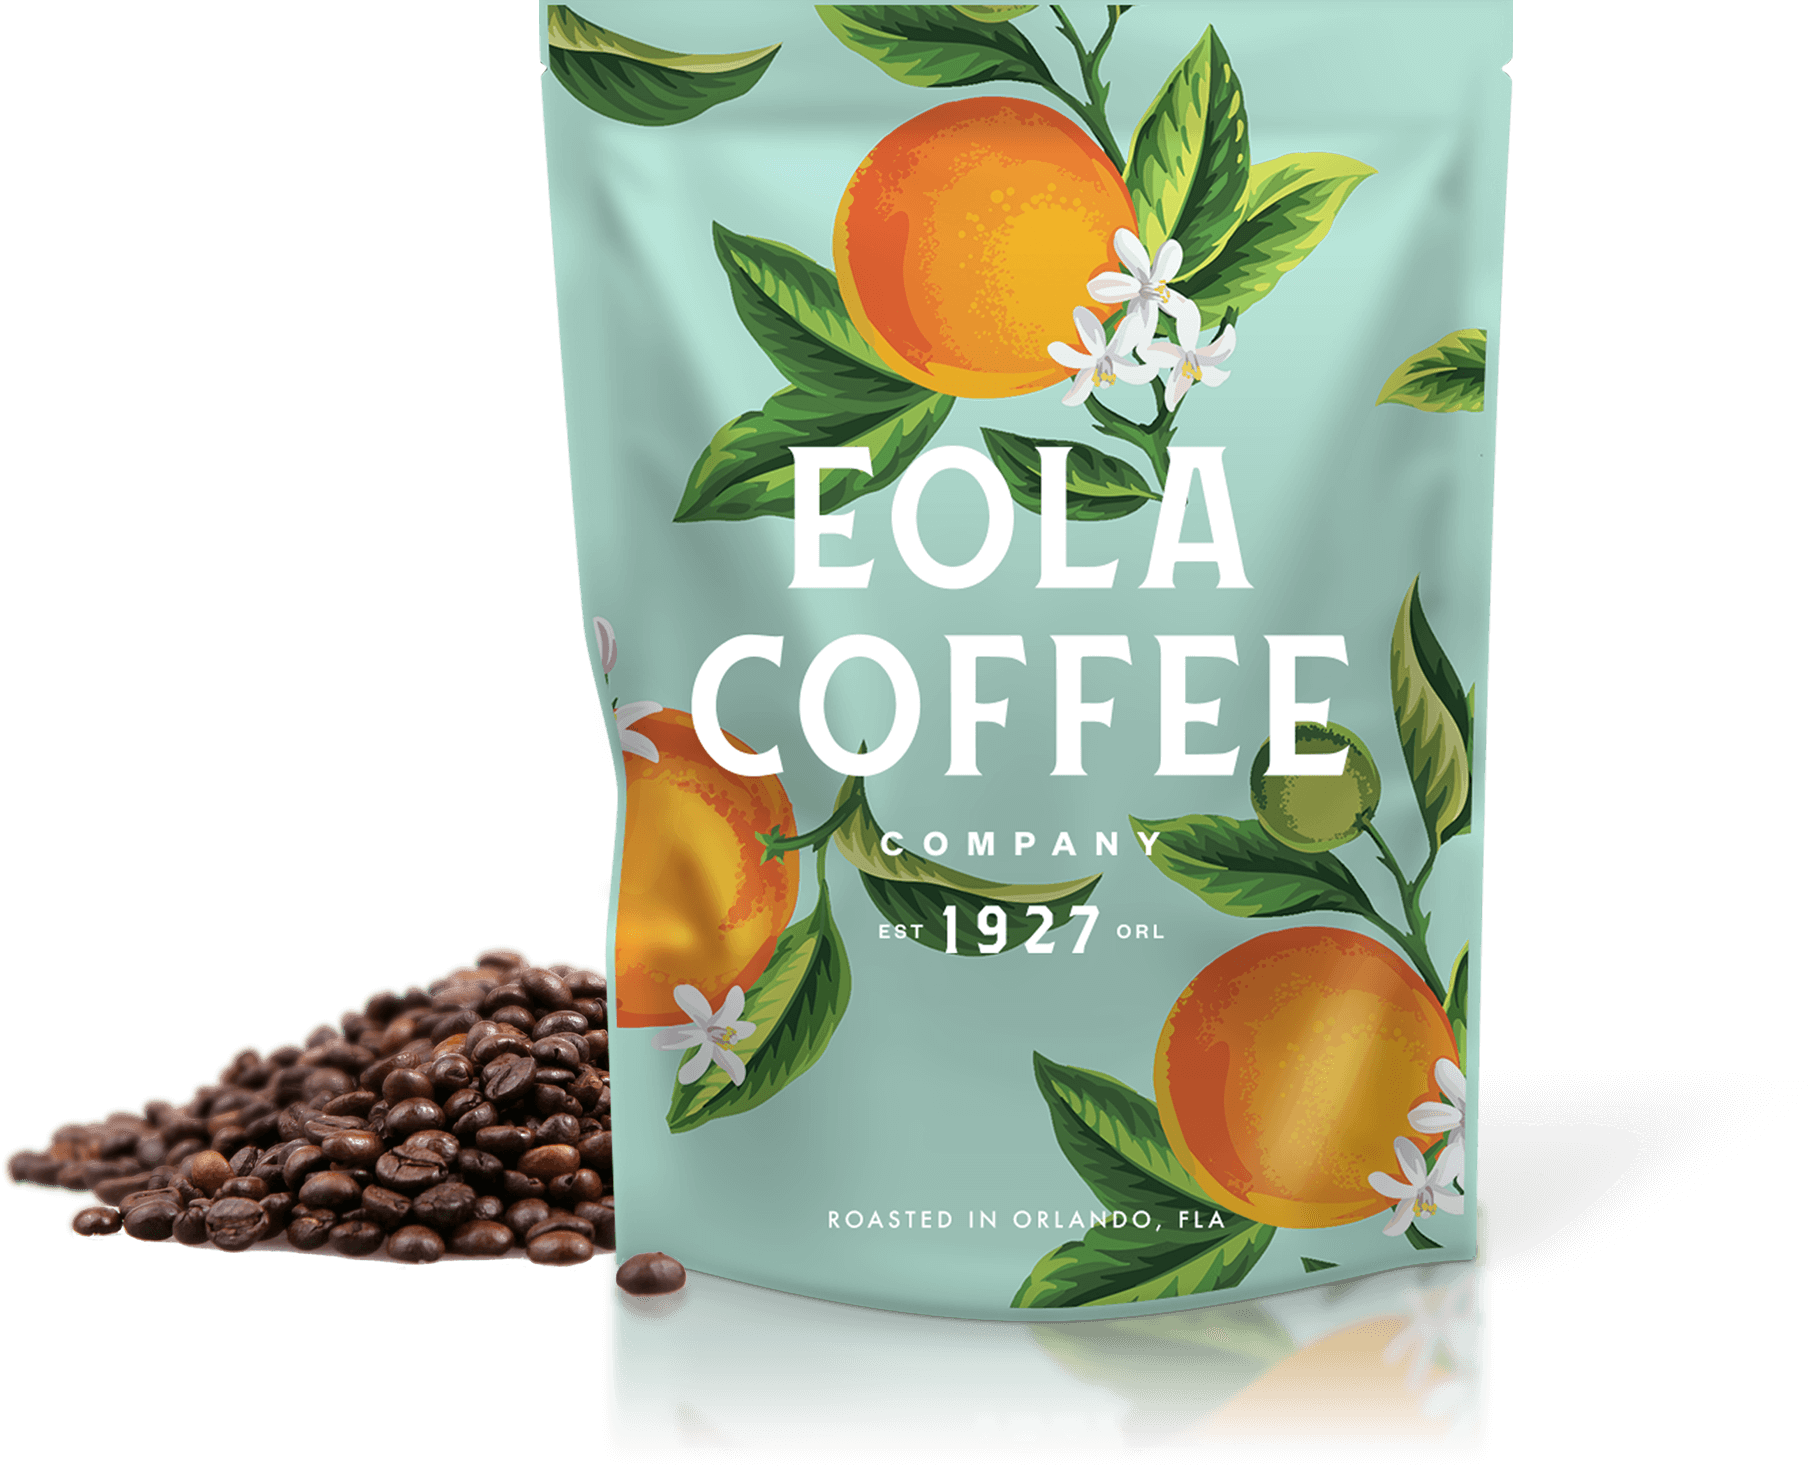 Orlando's Eola Coffee